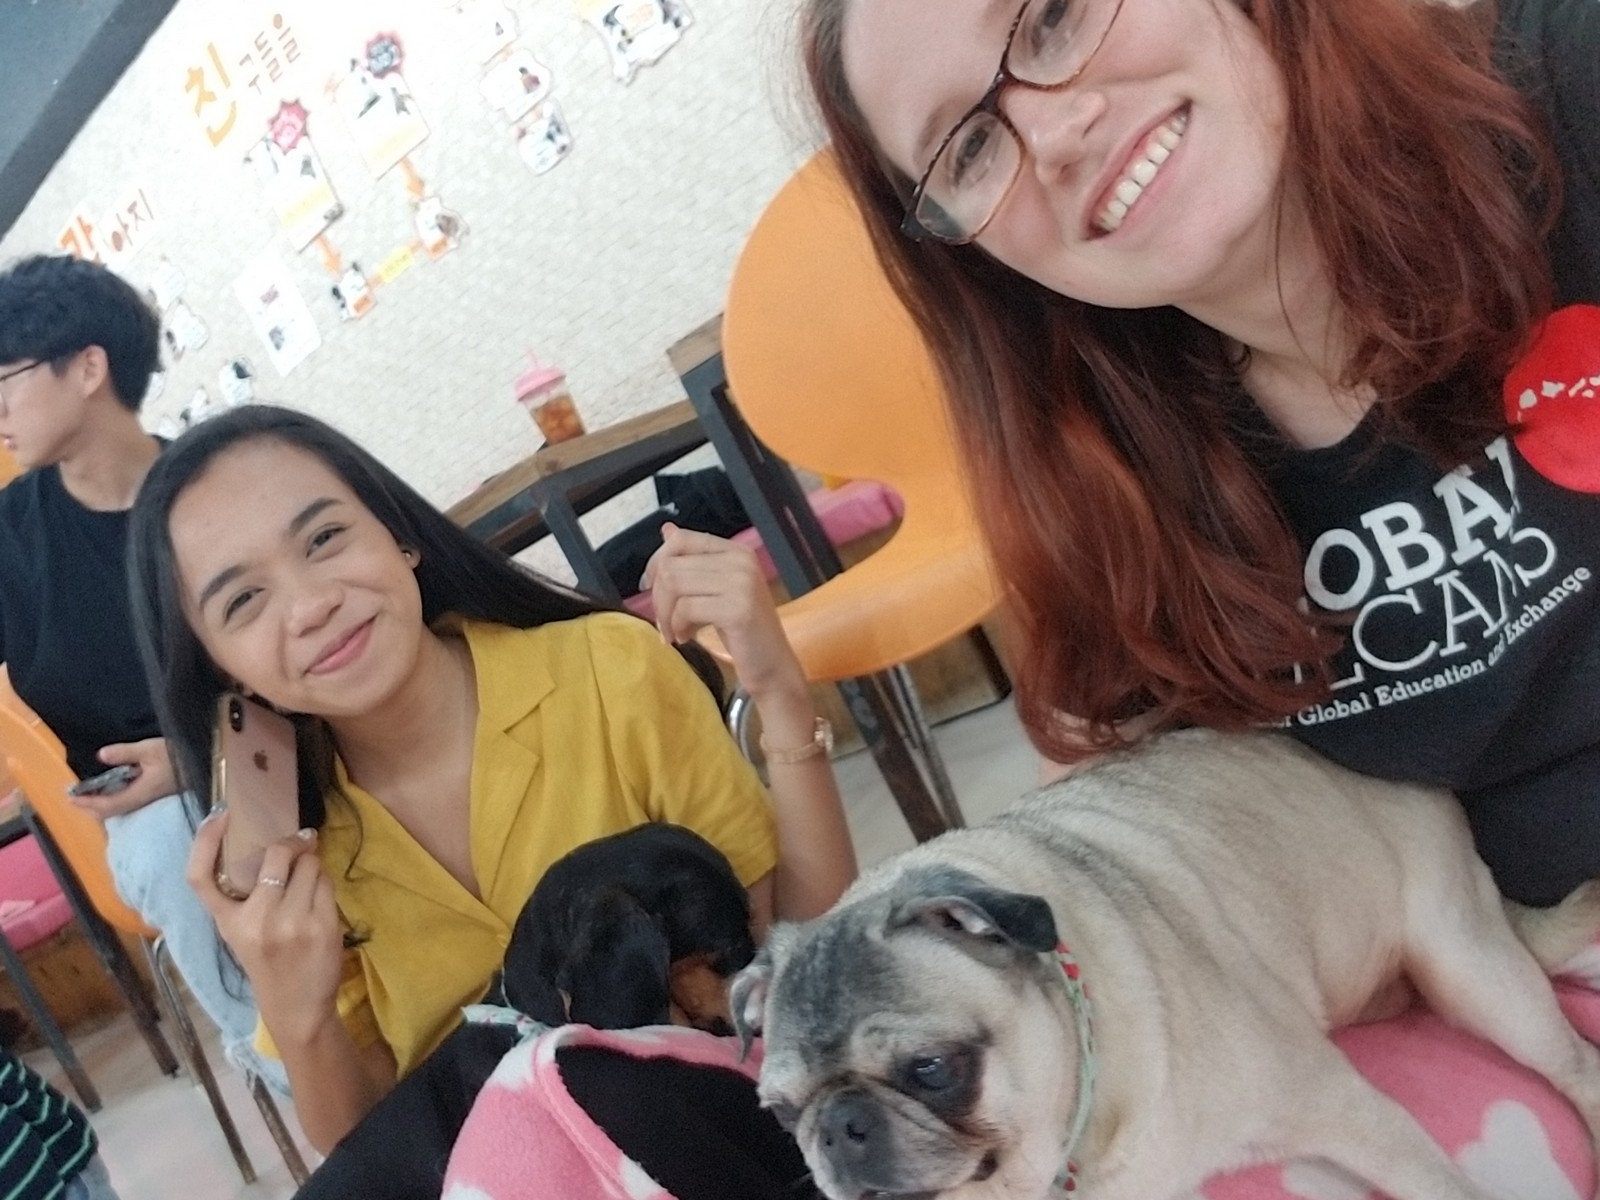 """Sienna with friend, each holding cute dog. Sienna is wearing her """"Global Vulcans"""" t-shirt."""